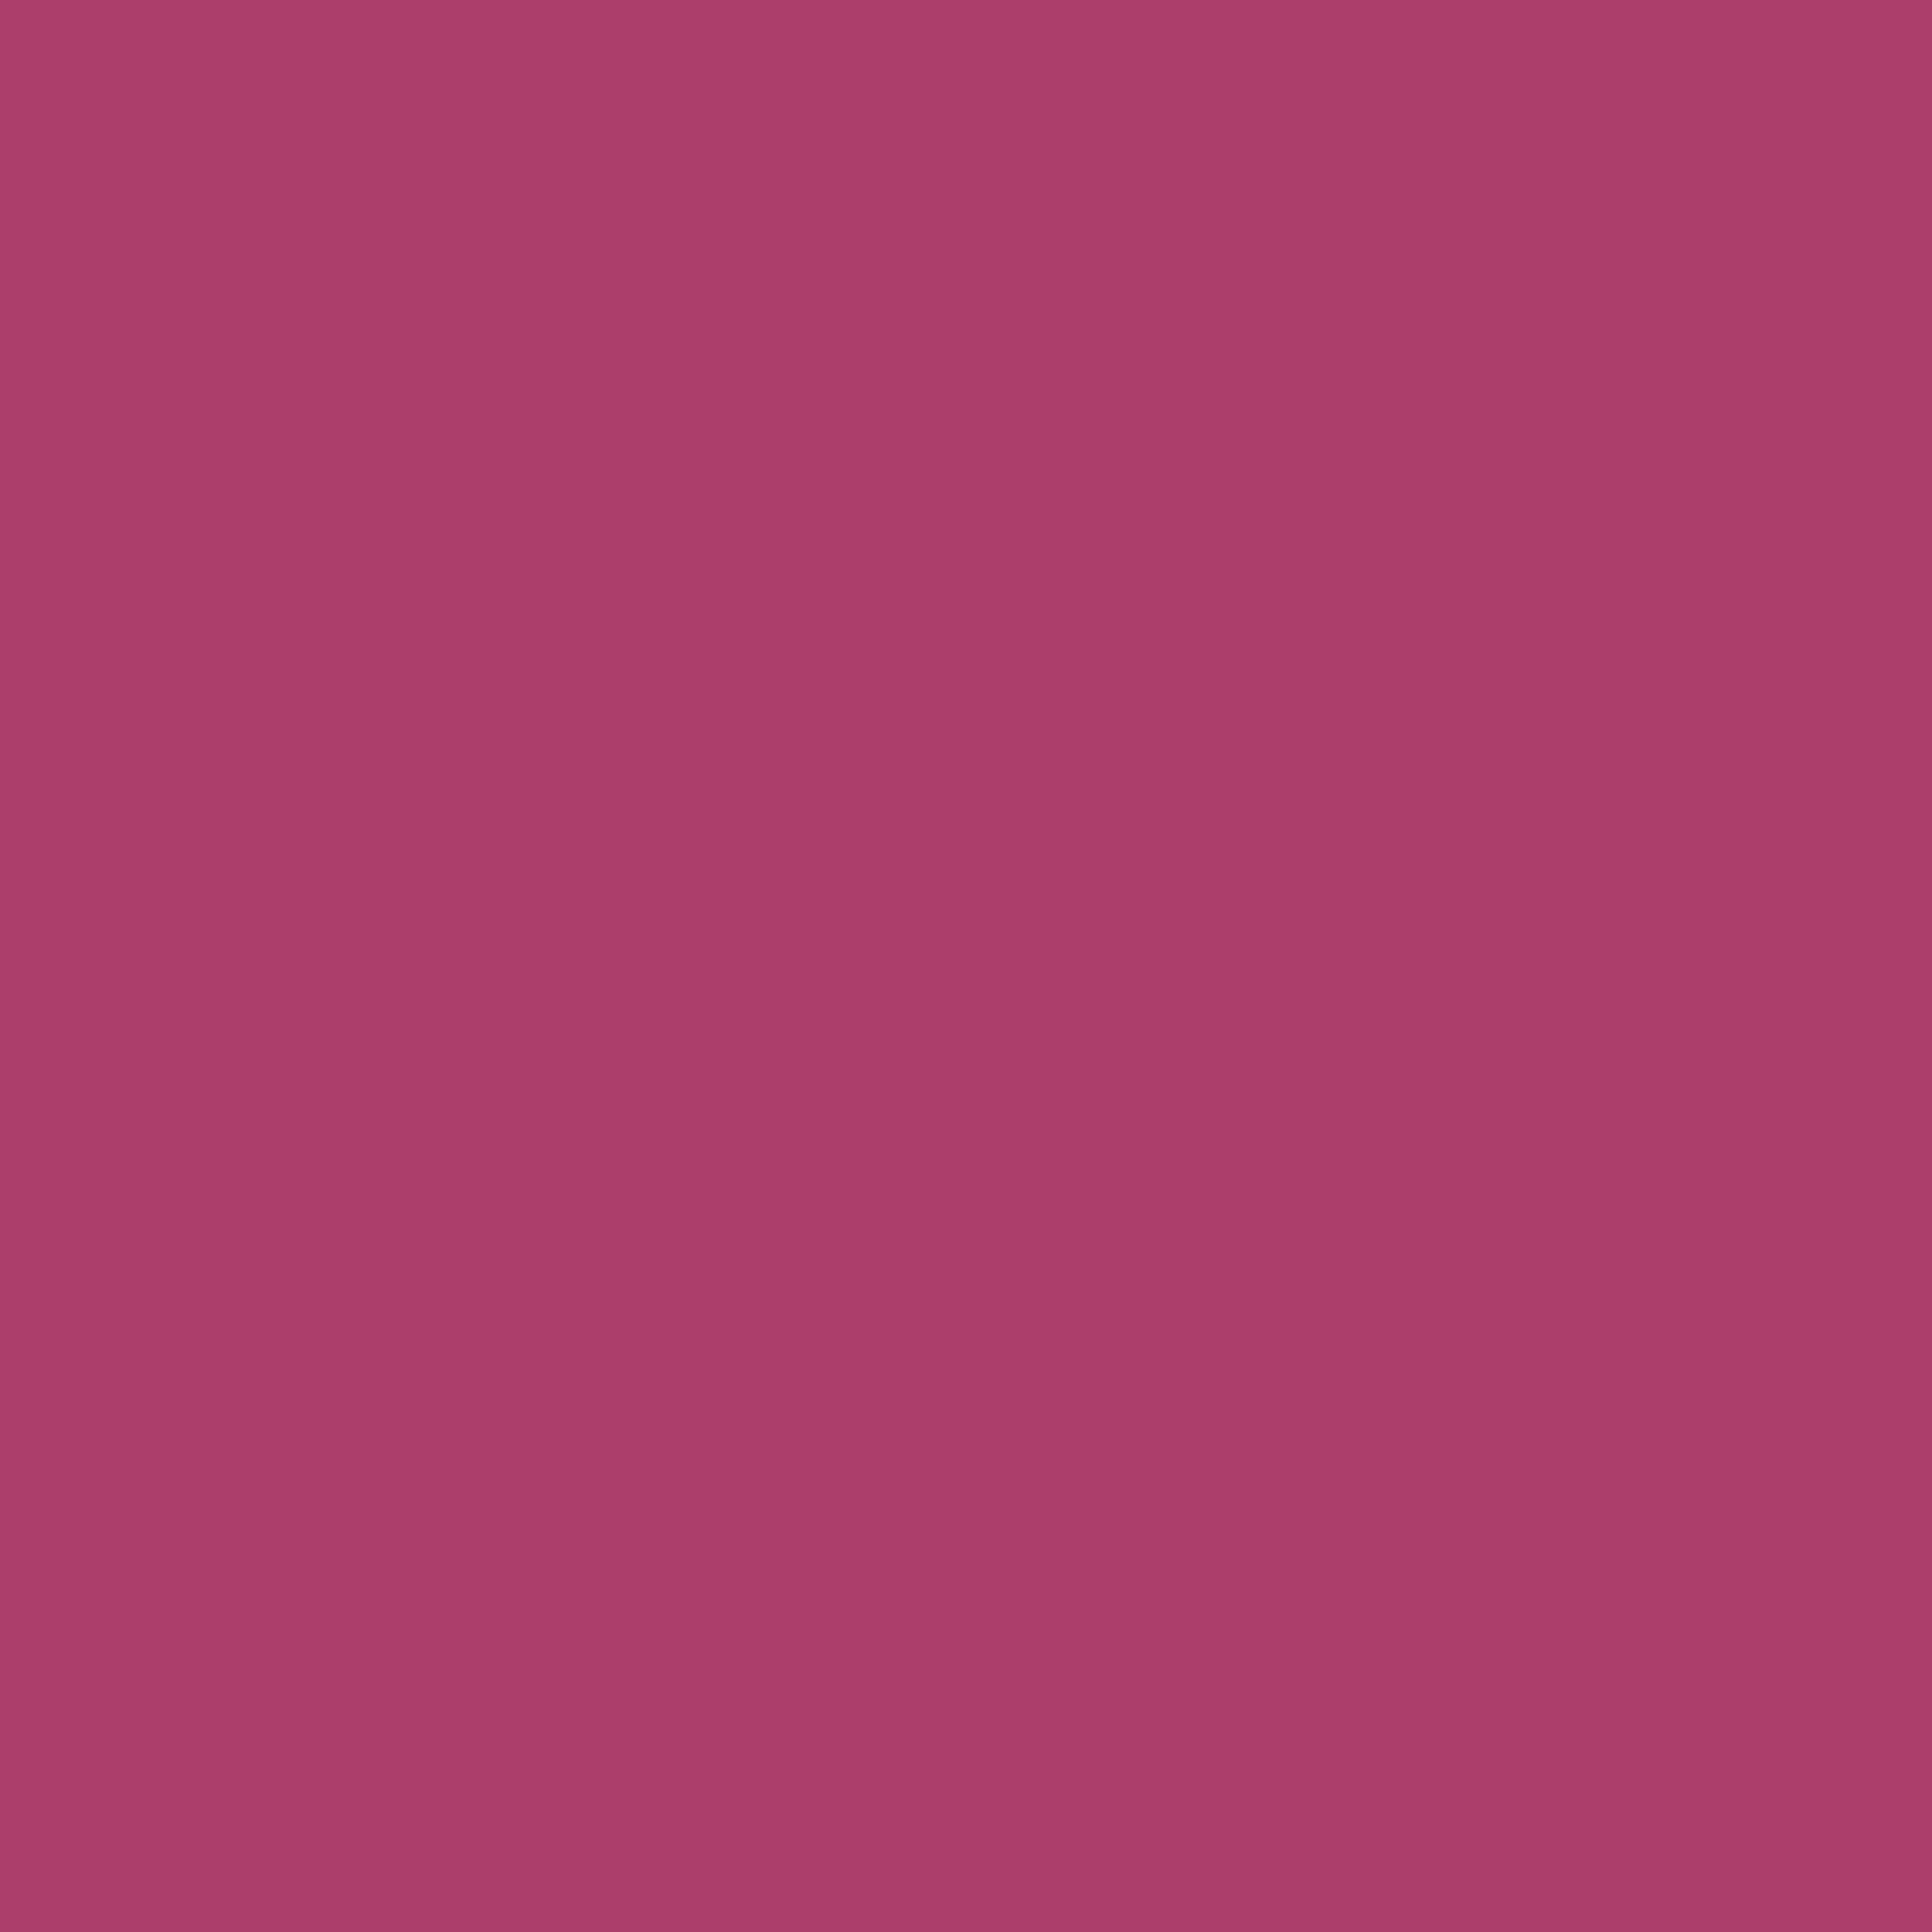 2048x2048 Medium Ruby Solid Color Background